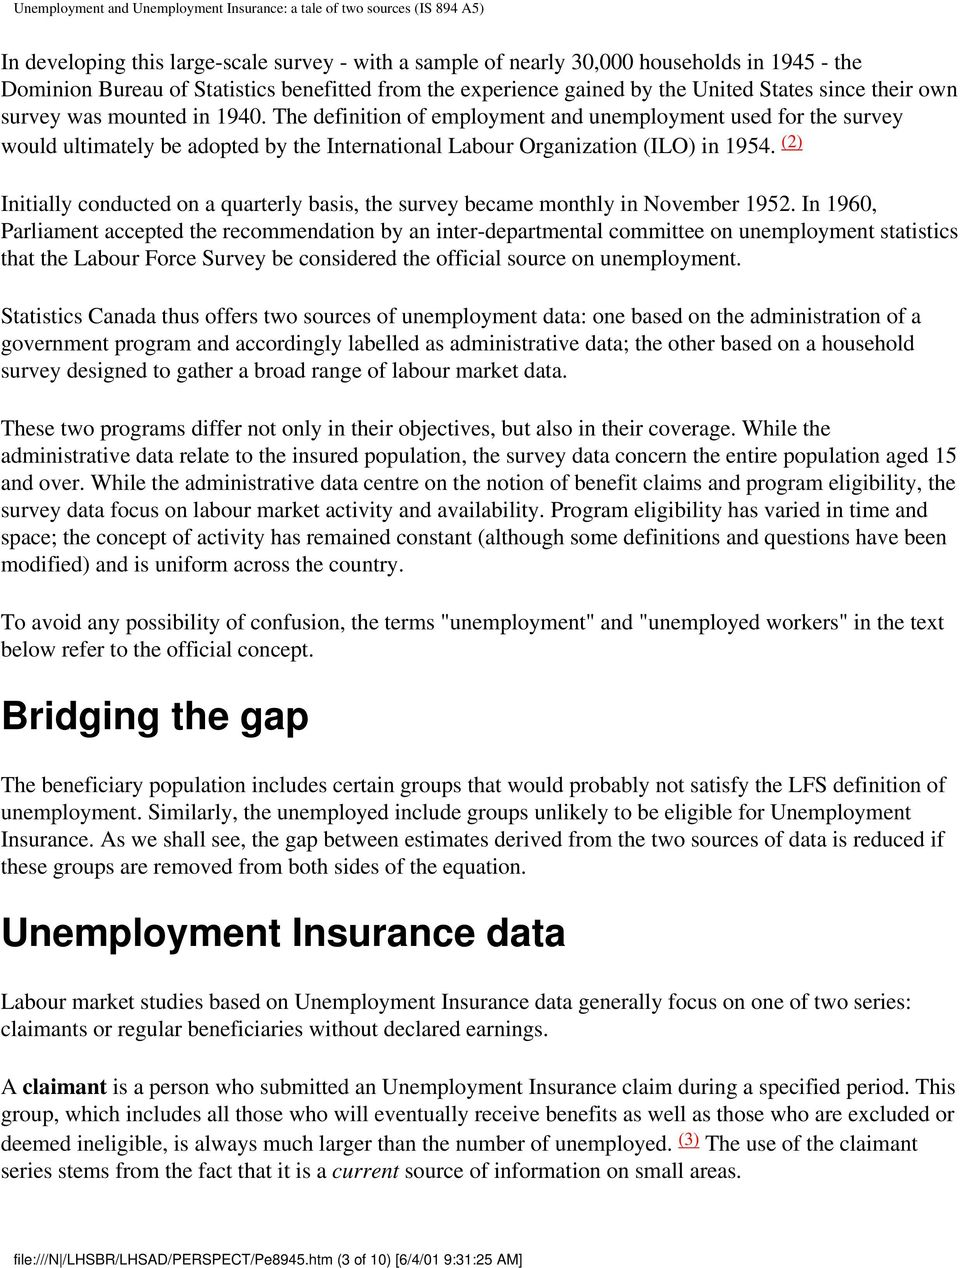 unemployment and unemployment insurance: a tale of two sources - pdf